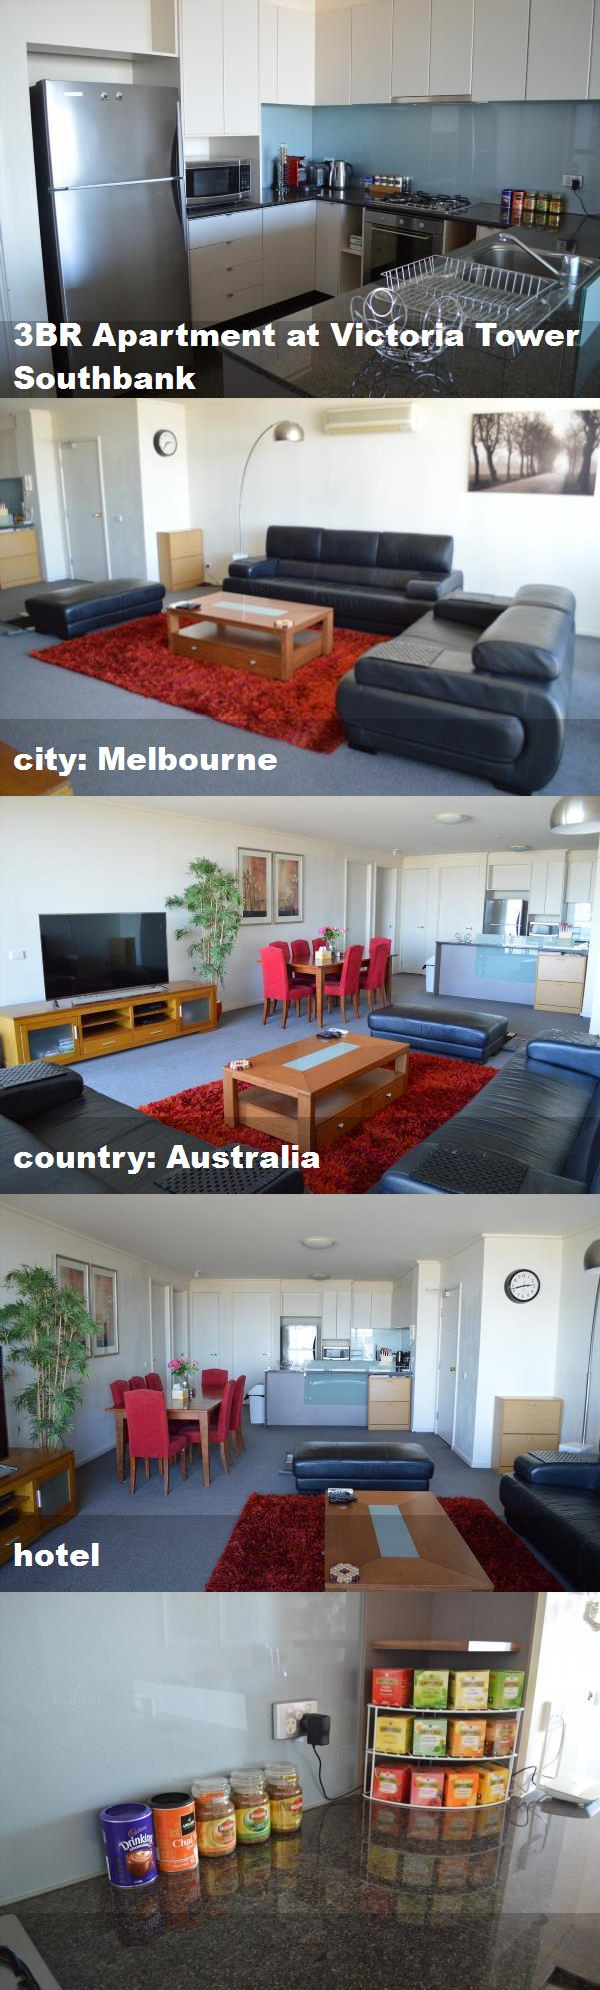 3br Apartment At Victoria Tower Southbank City Melbourne